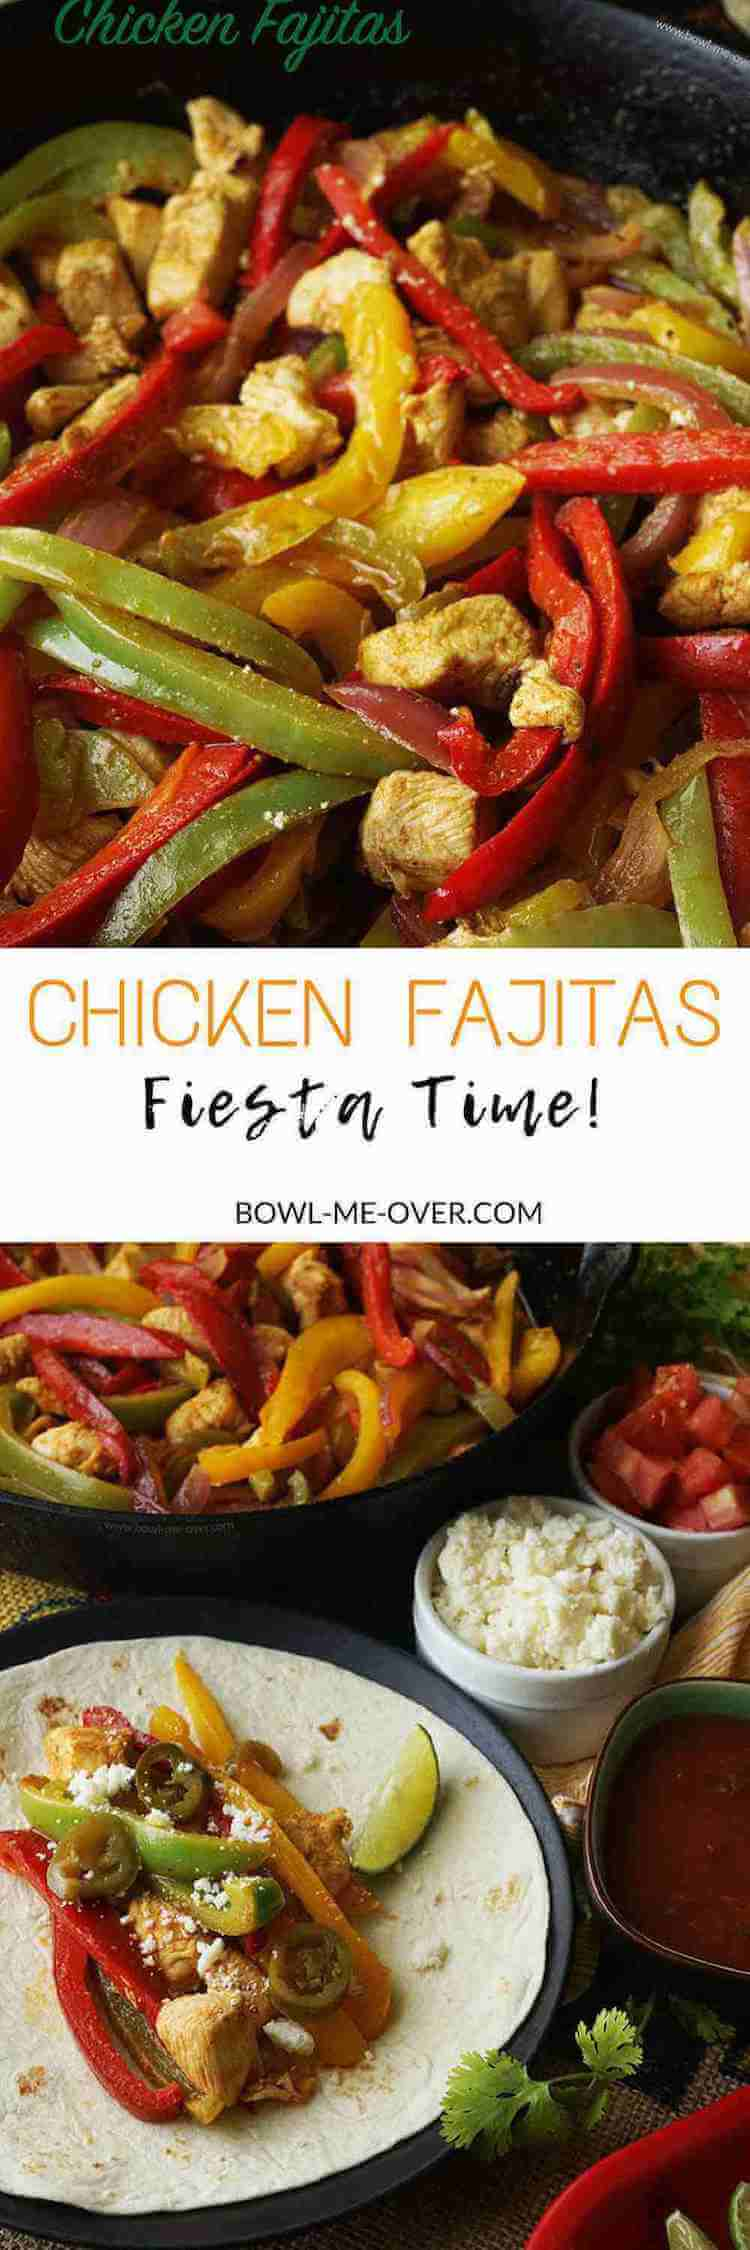 Having a party? Start your fiesta off with a bang by serving Chicken Fajitas! Crowd pleasing meal great for a party or for a fun night at home, flavorful and fabulous!